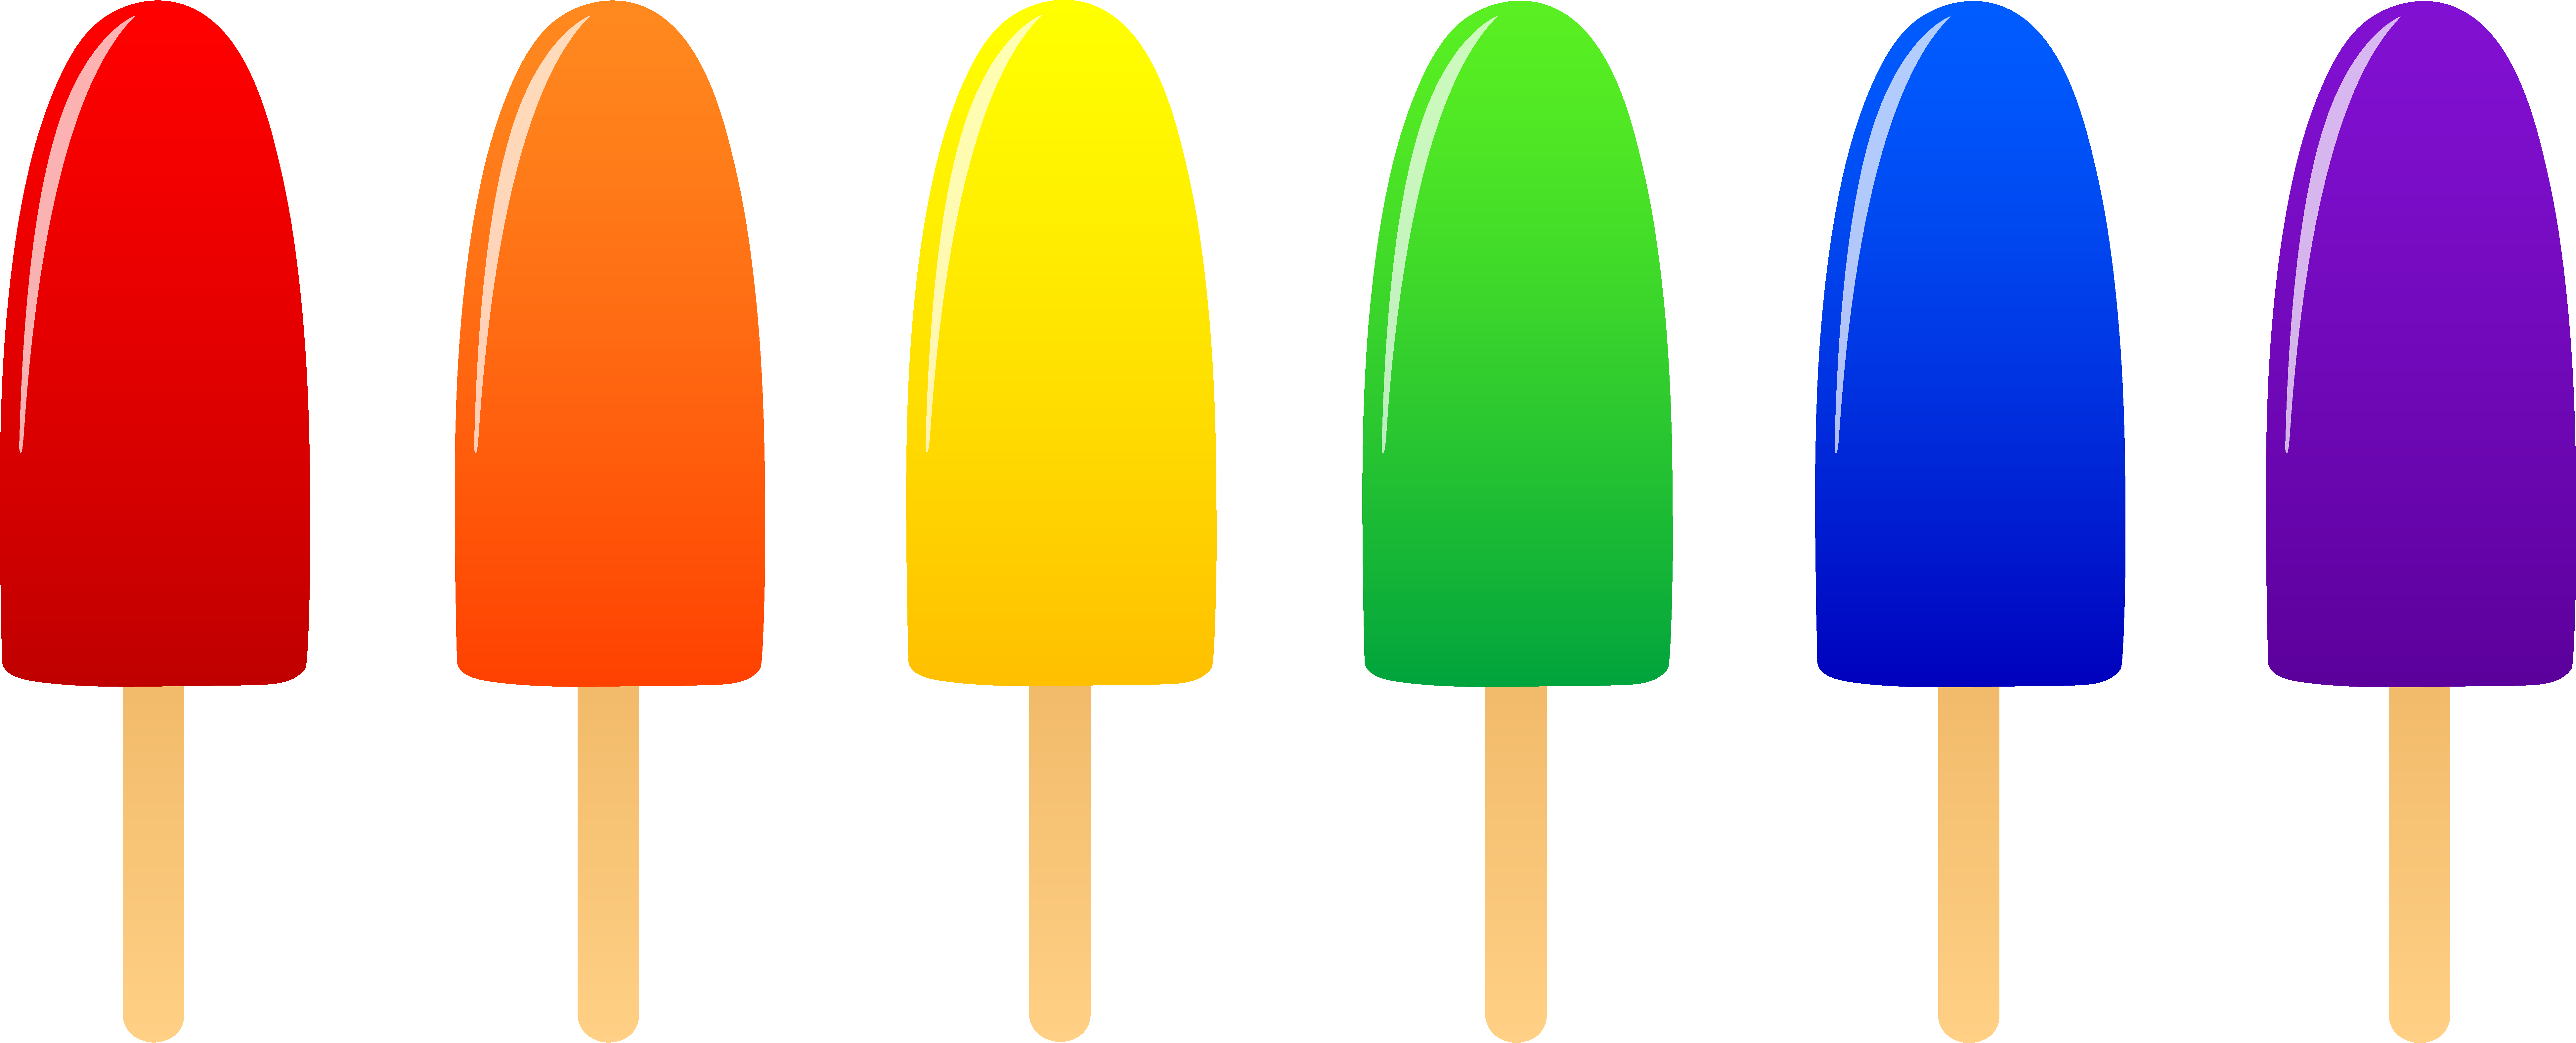 vector royalty free stock Ice pops in six. Popsicle clipart.